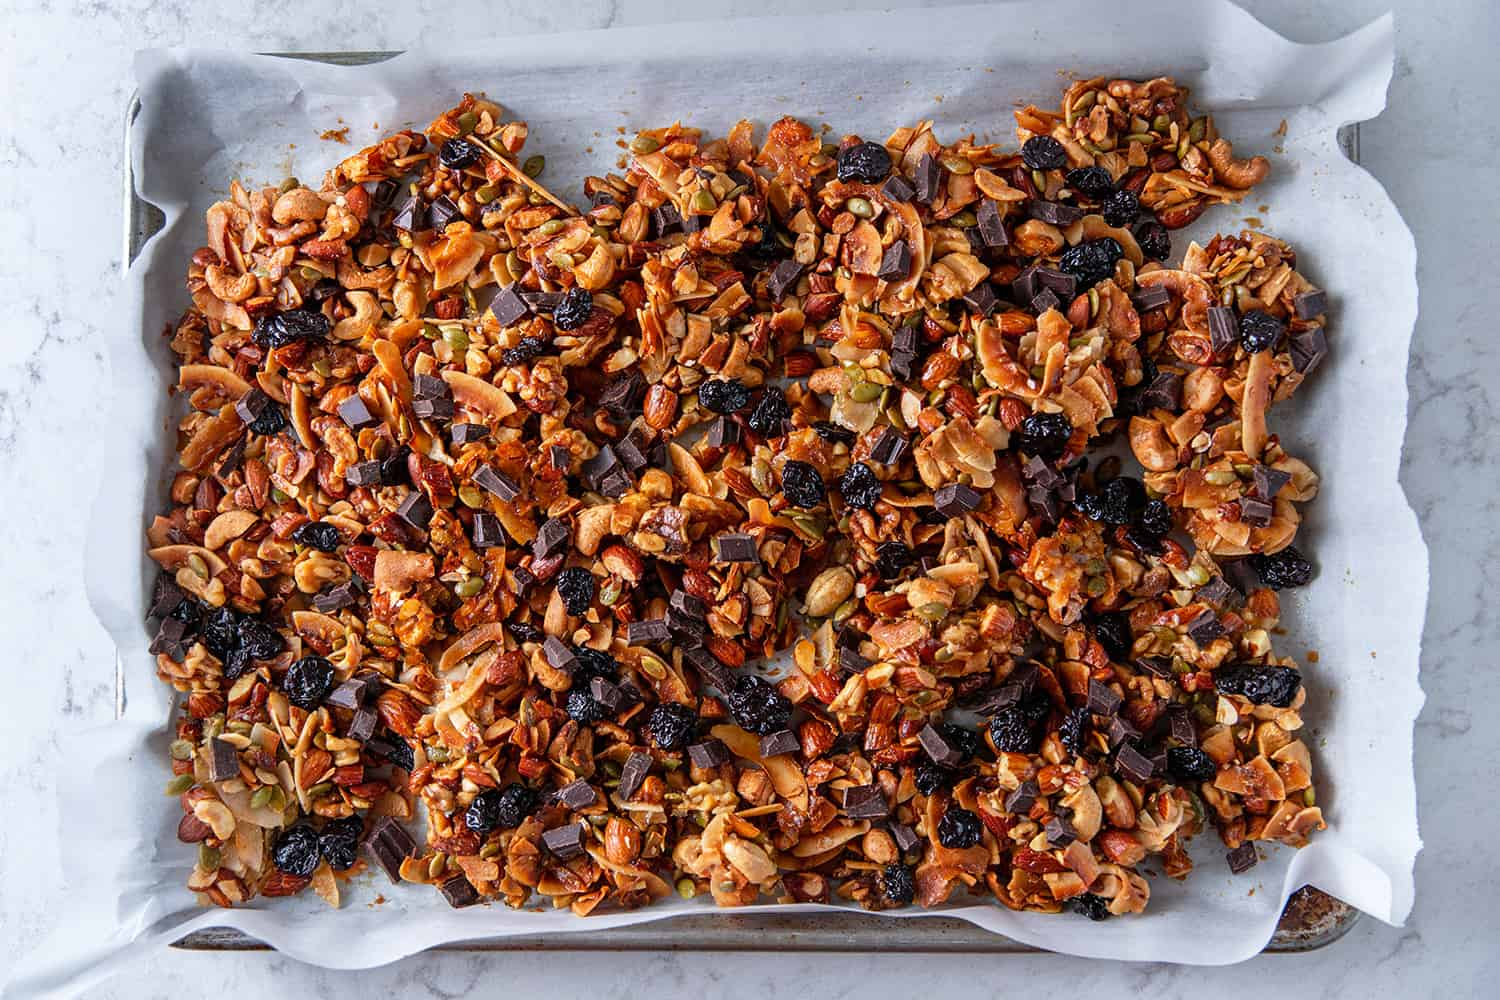 A tray of chocolate cherry paleo granola on a rimmed baking sheet lined with parchment paper